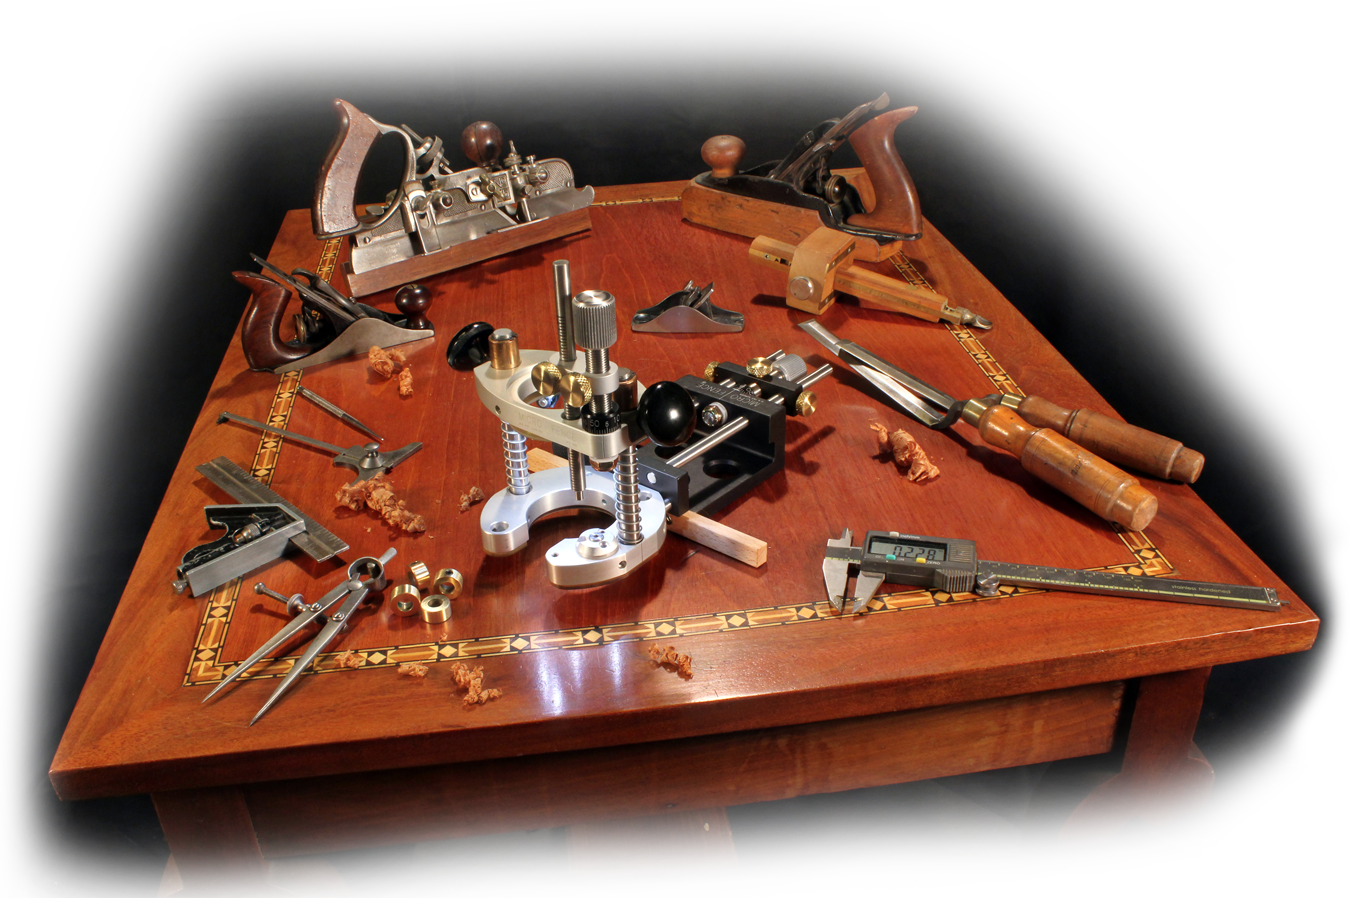 A display of multiple woodworking tools, from classic to modern, with black background.